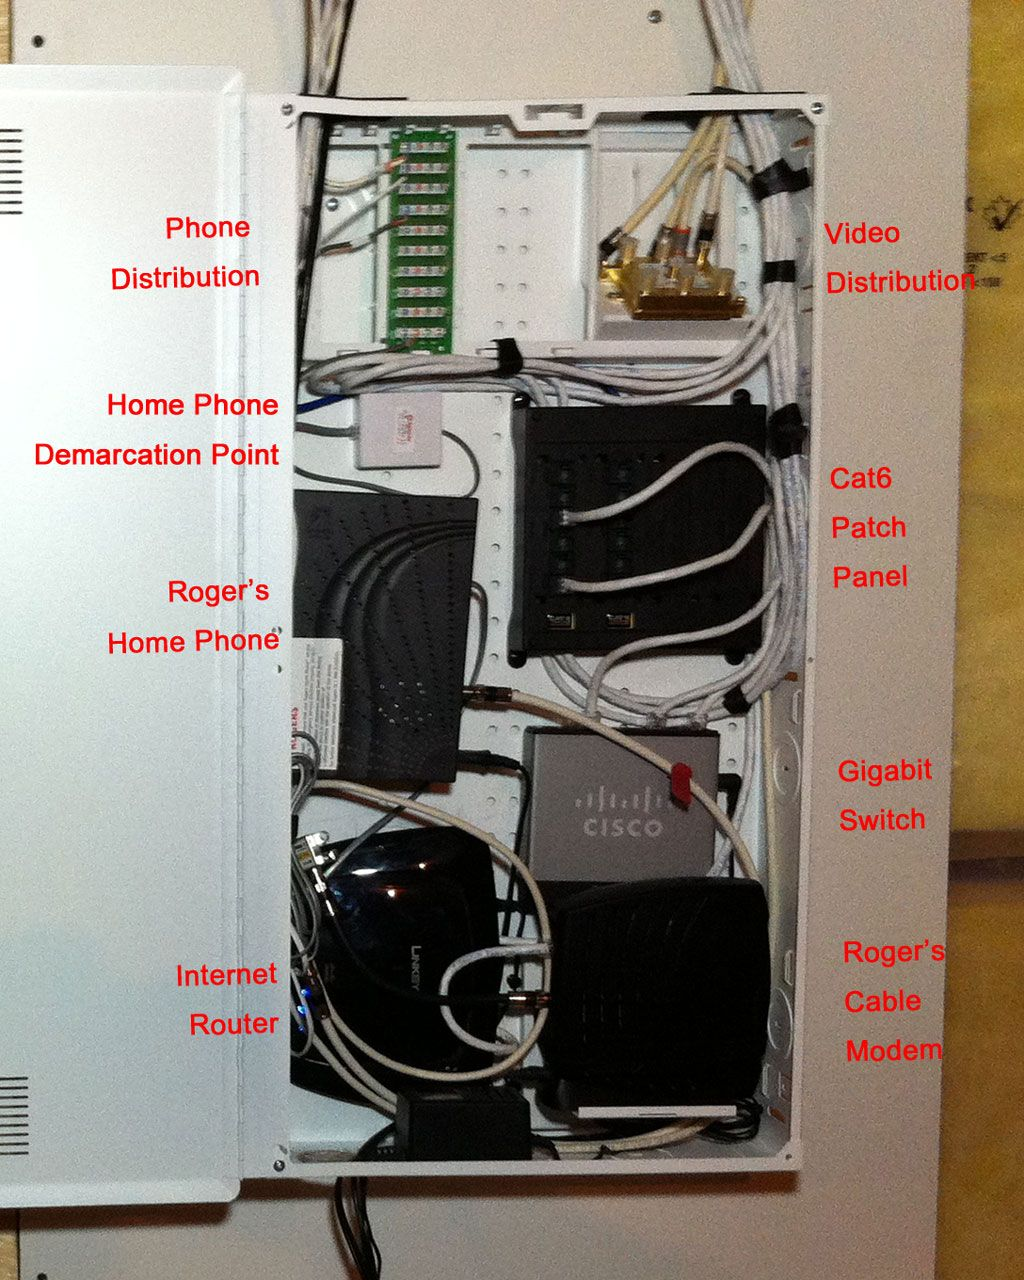 basic home structured wiring after open detail home network rh pinterest com Home Structured Wiring Panel GE Structured Wiring Panel